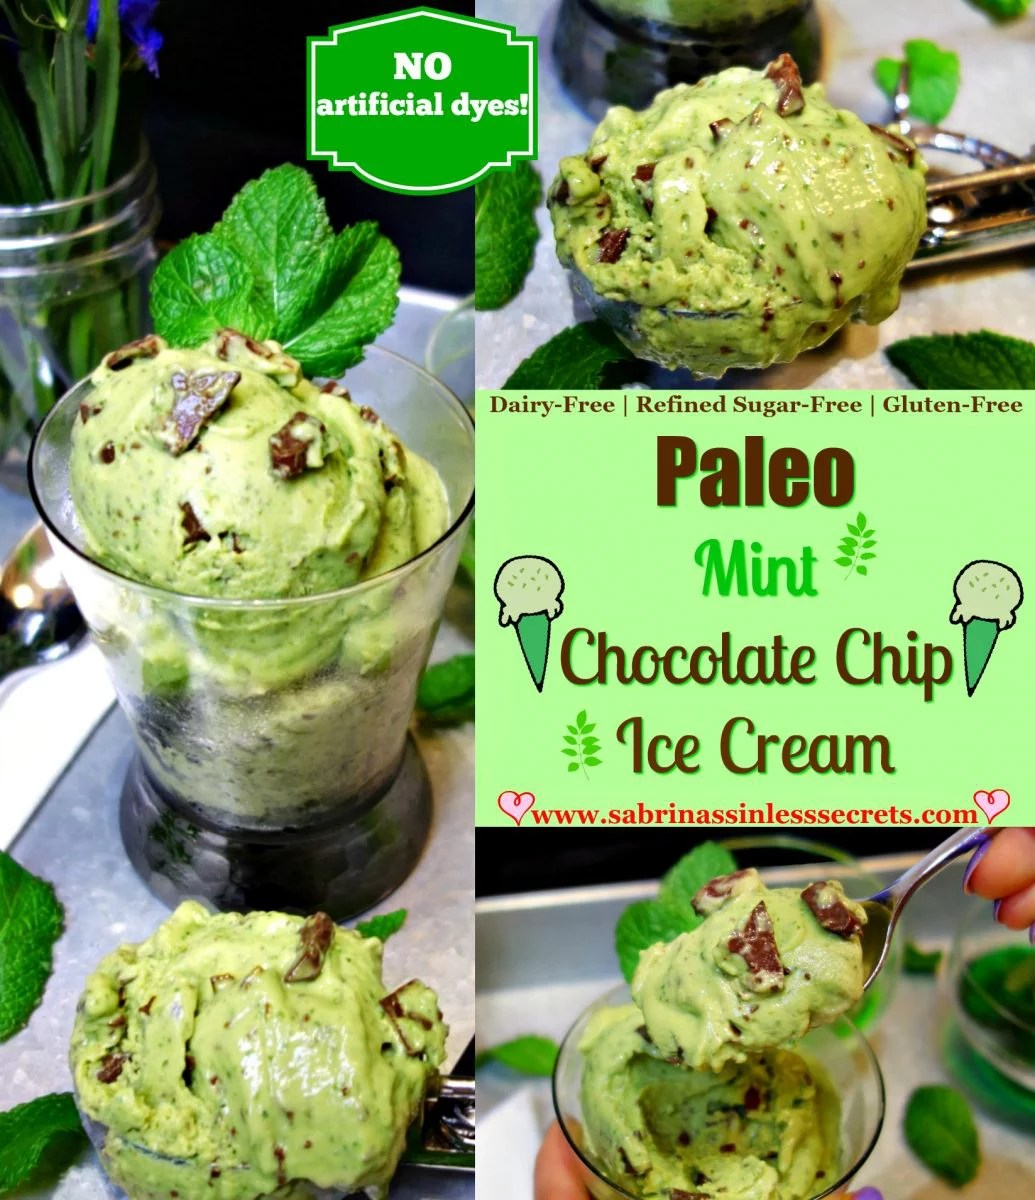 Homemade Paleo Mint Chocolate Chip Ice Cream that is also dairy-free, gluten-free, refined sugar-free, and clean-eating—and contains no artificial dyes, ingredients, while including the superfoods, spinach and avocado.